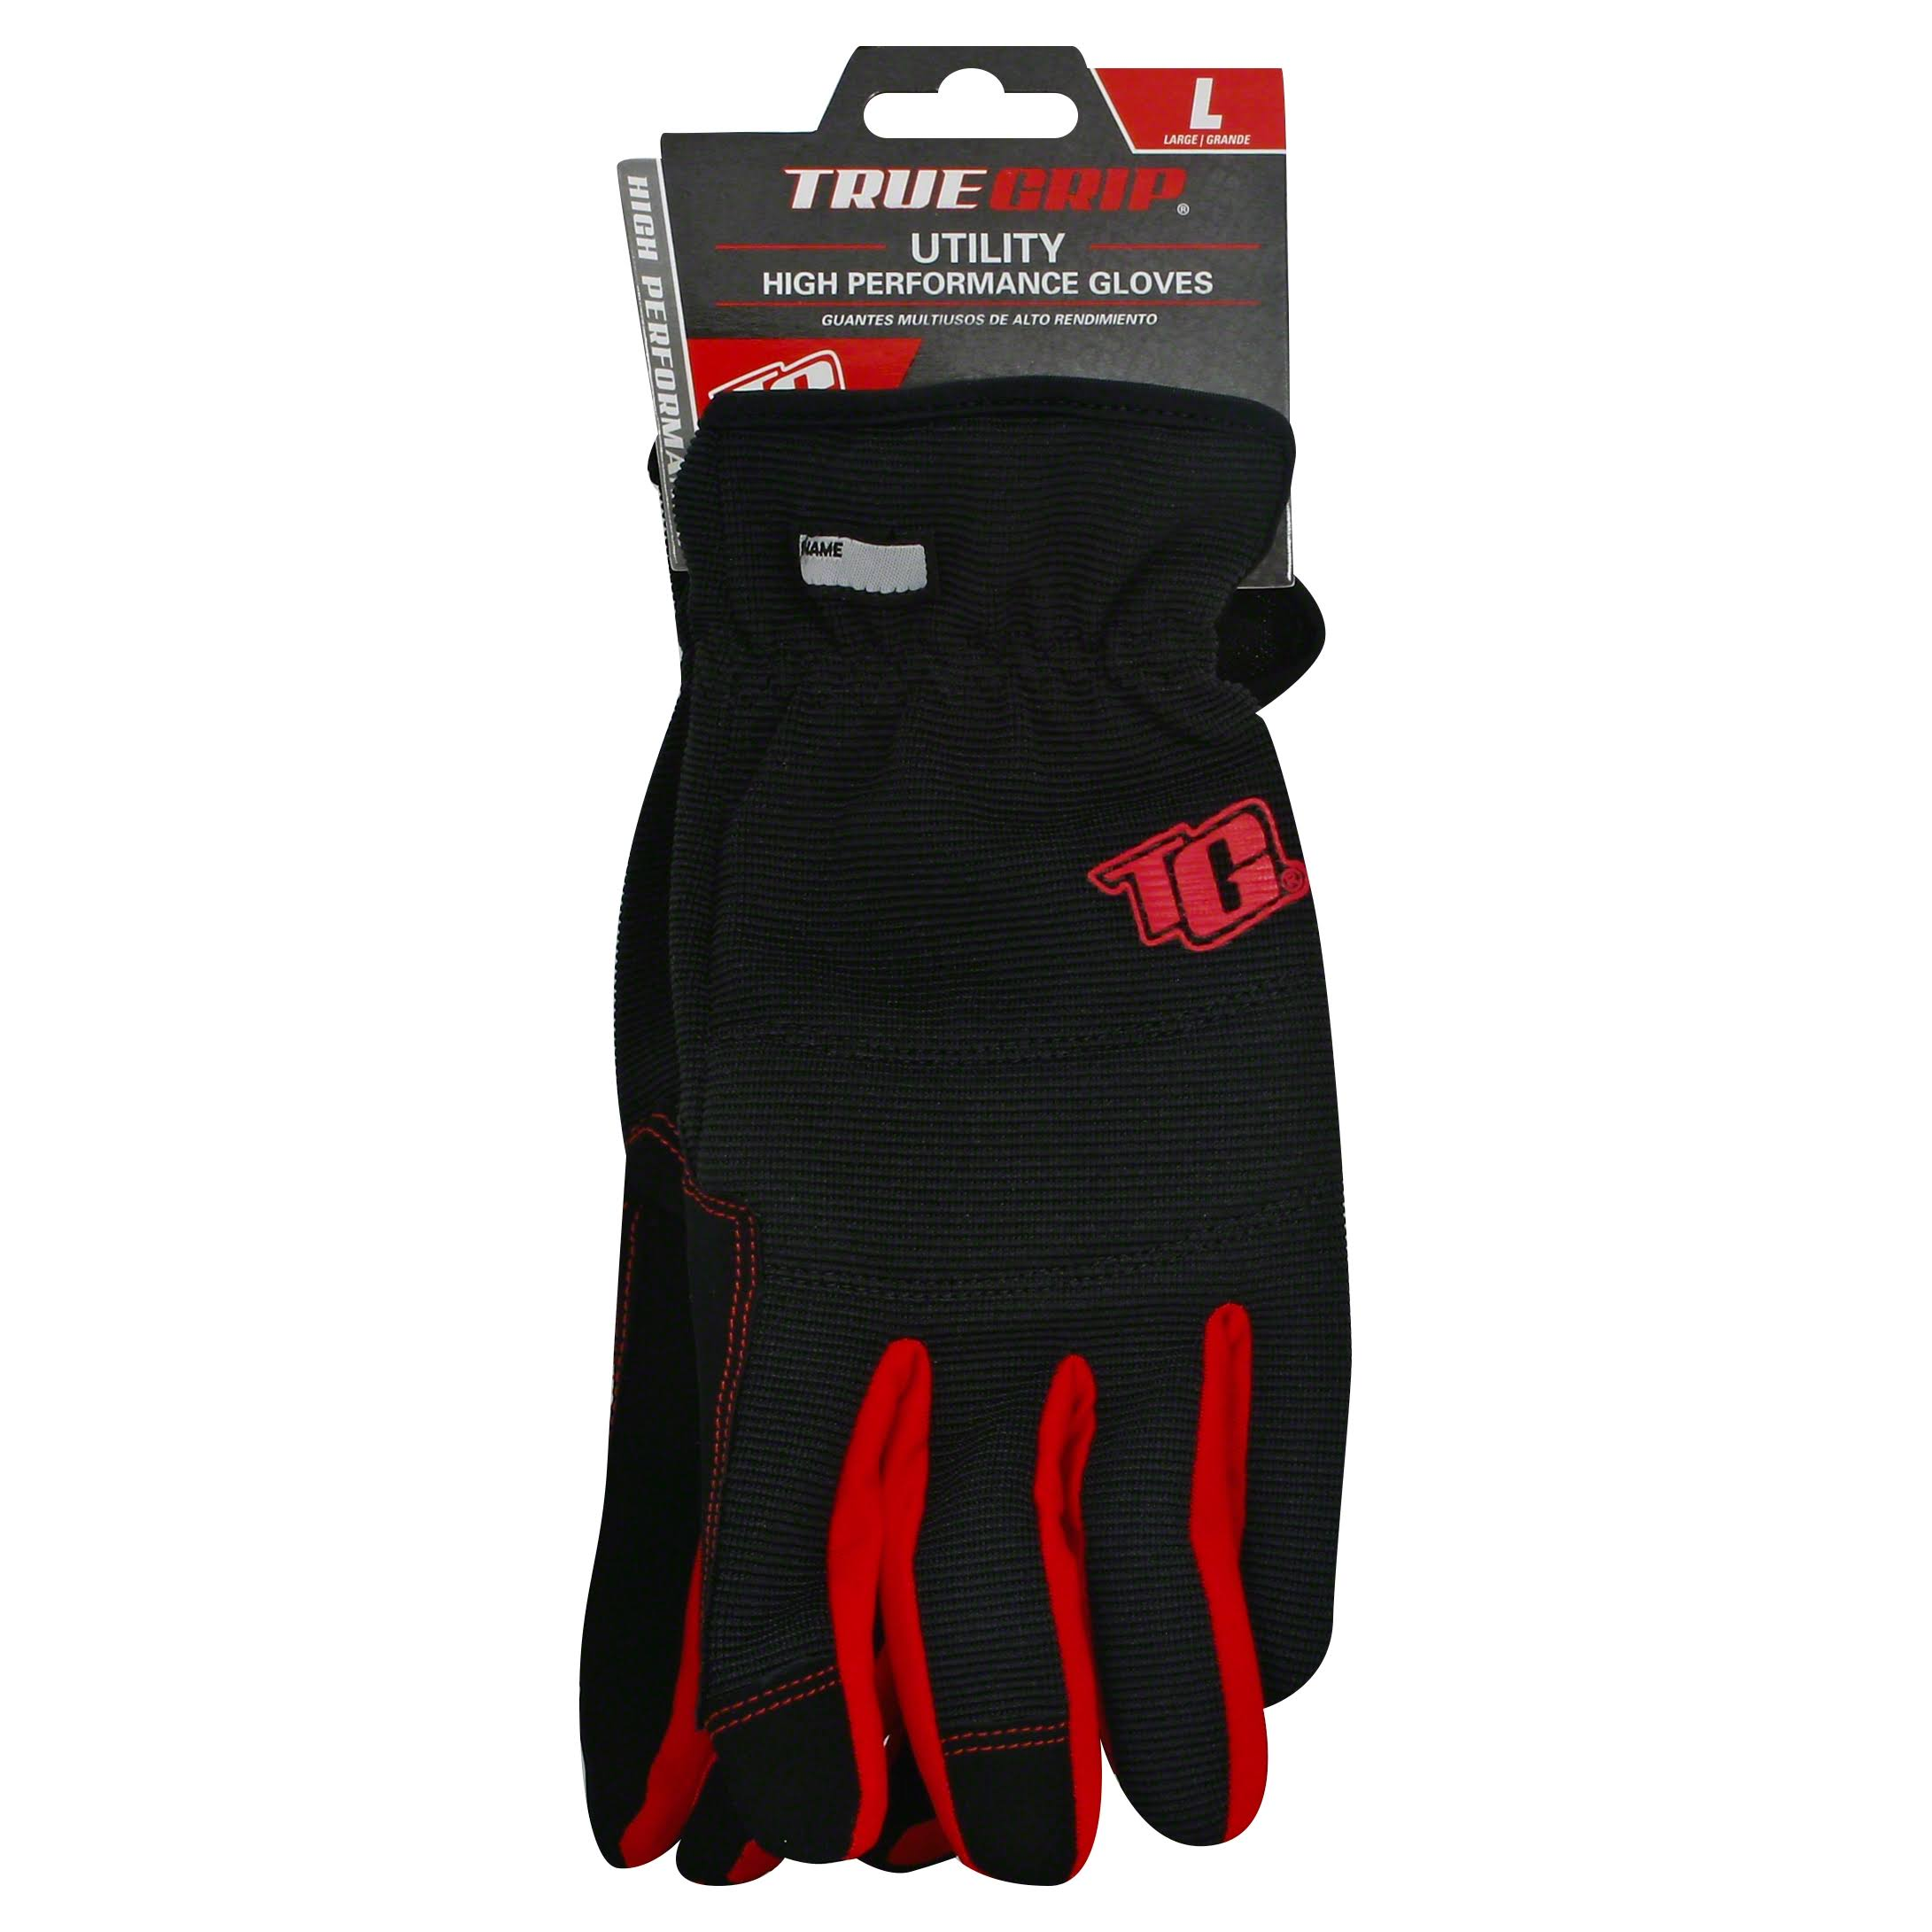 Big Time Products True Grip Light Duty Utility Glove - Large